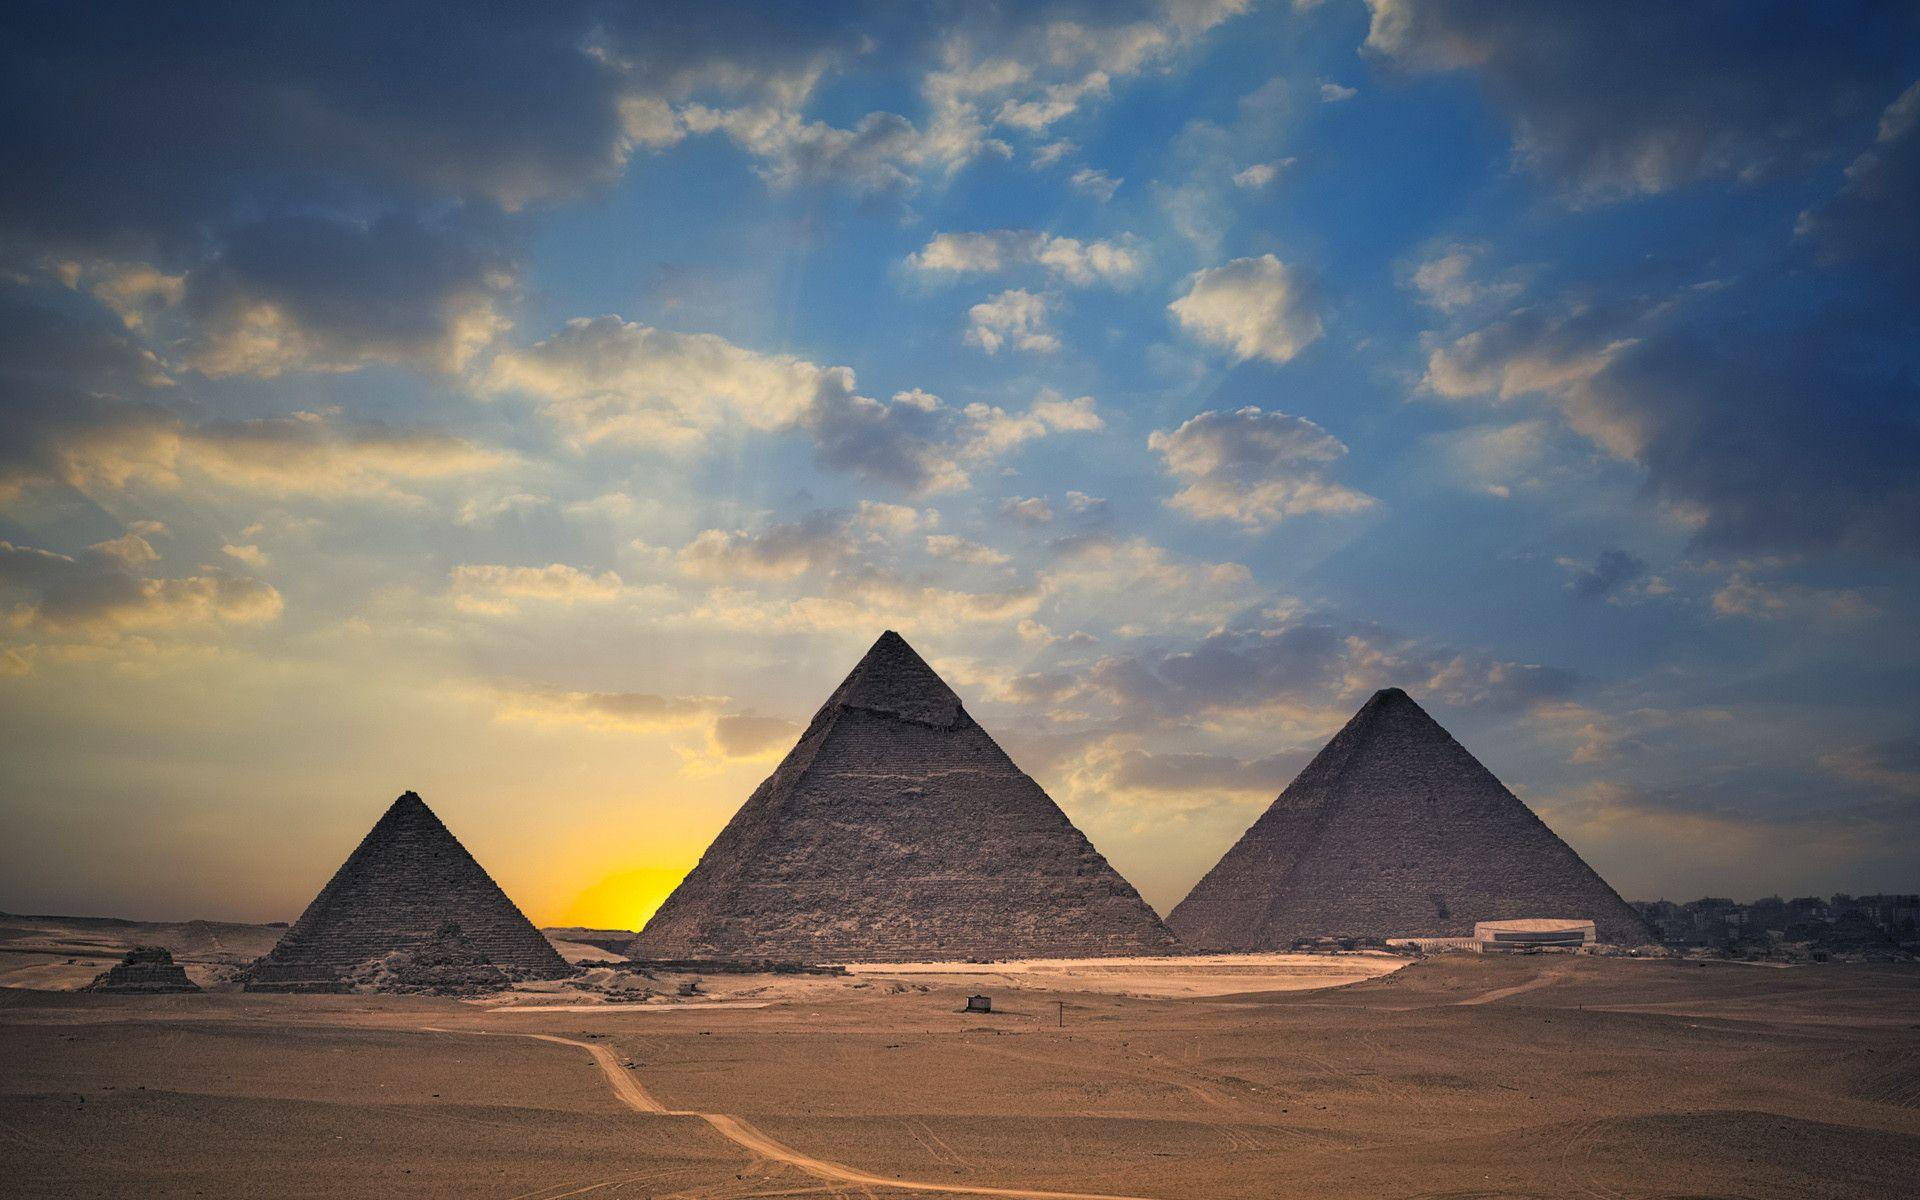 egypt desktop wallpaper - photo #8